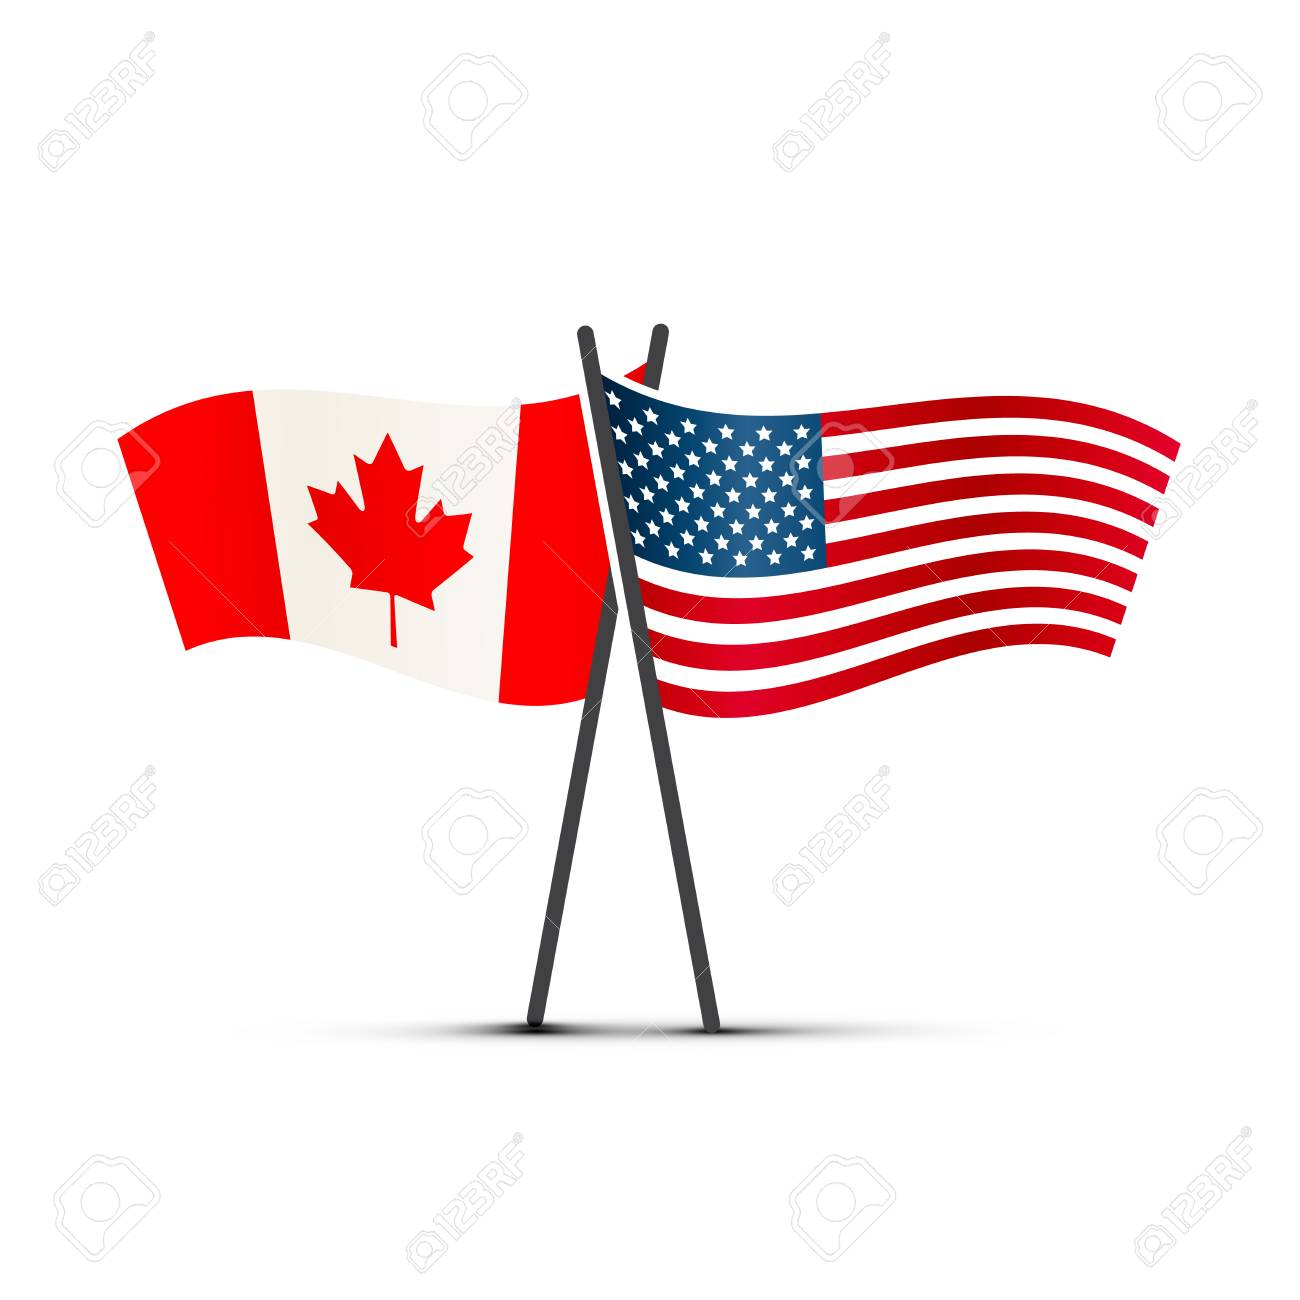 USA and Canada flags on poles isolated on white.